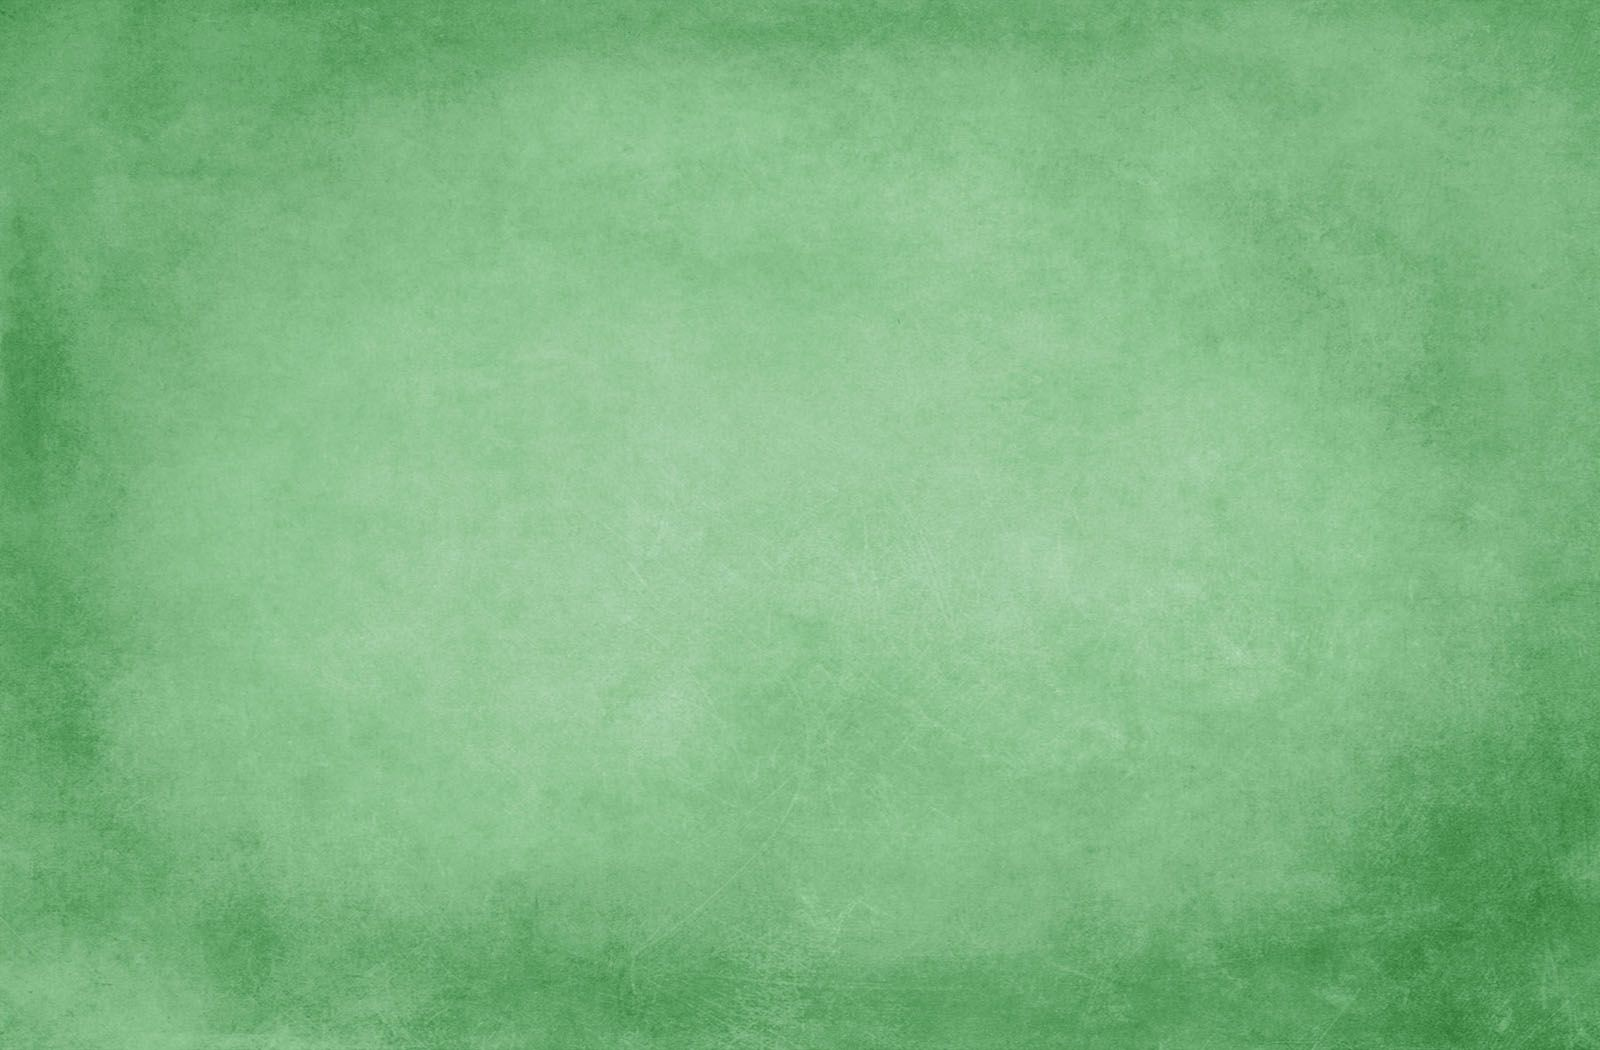 1600x1050 - Solid Green 13